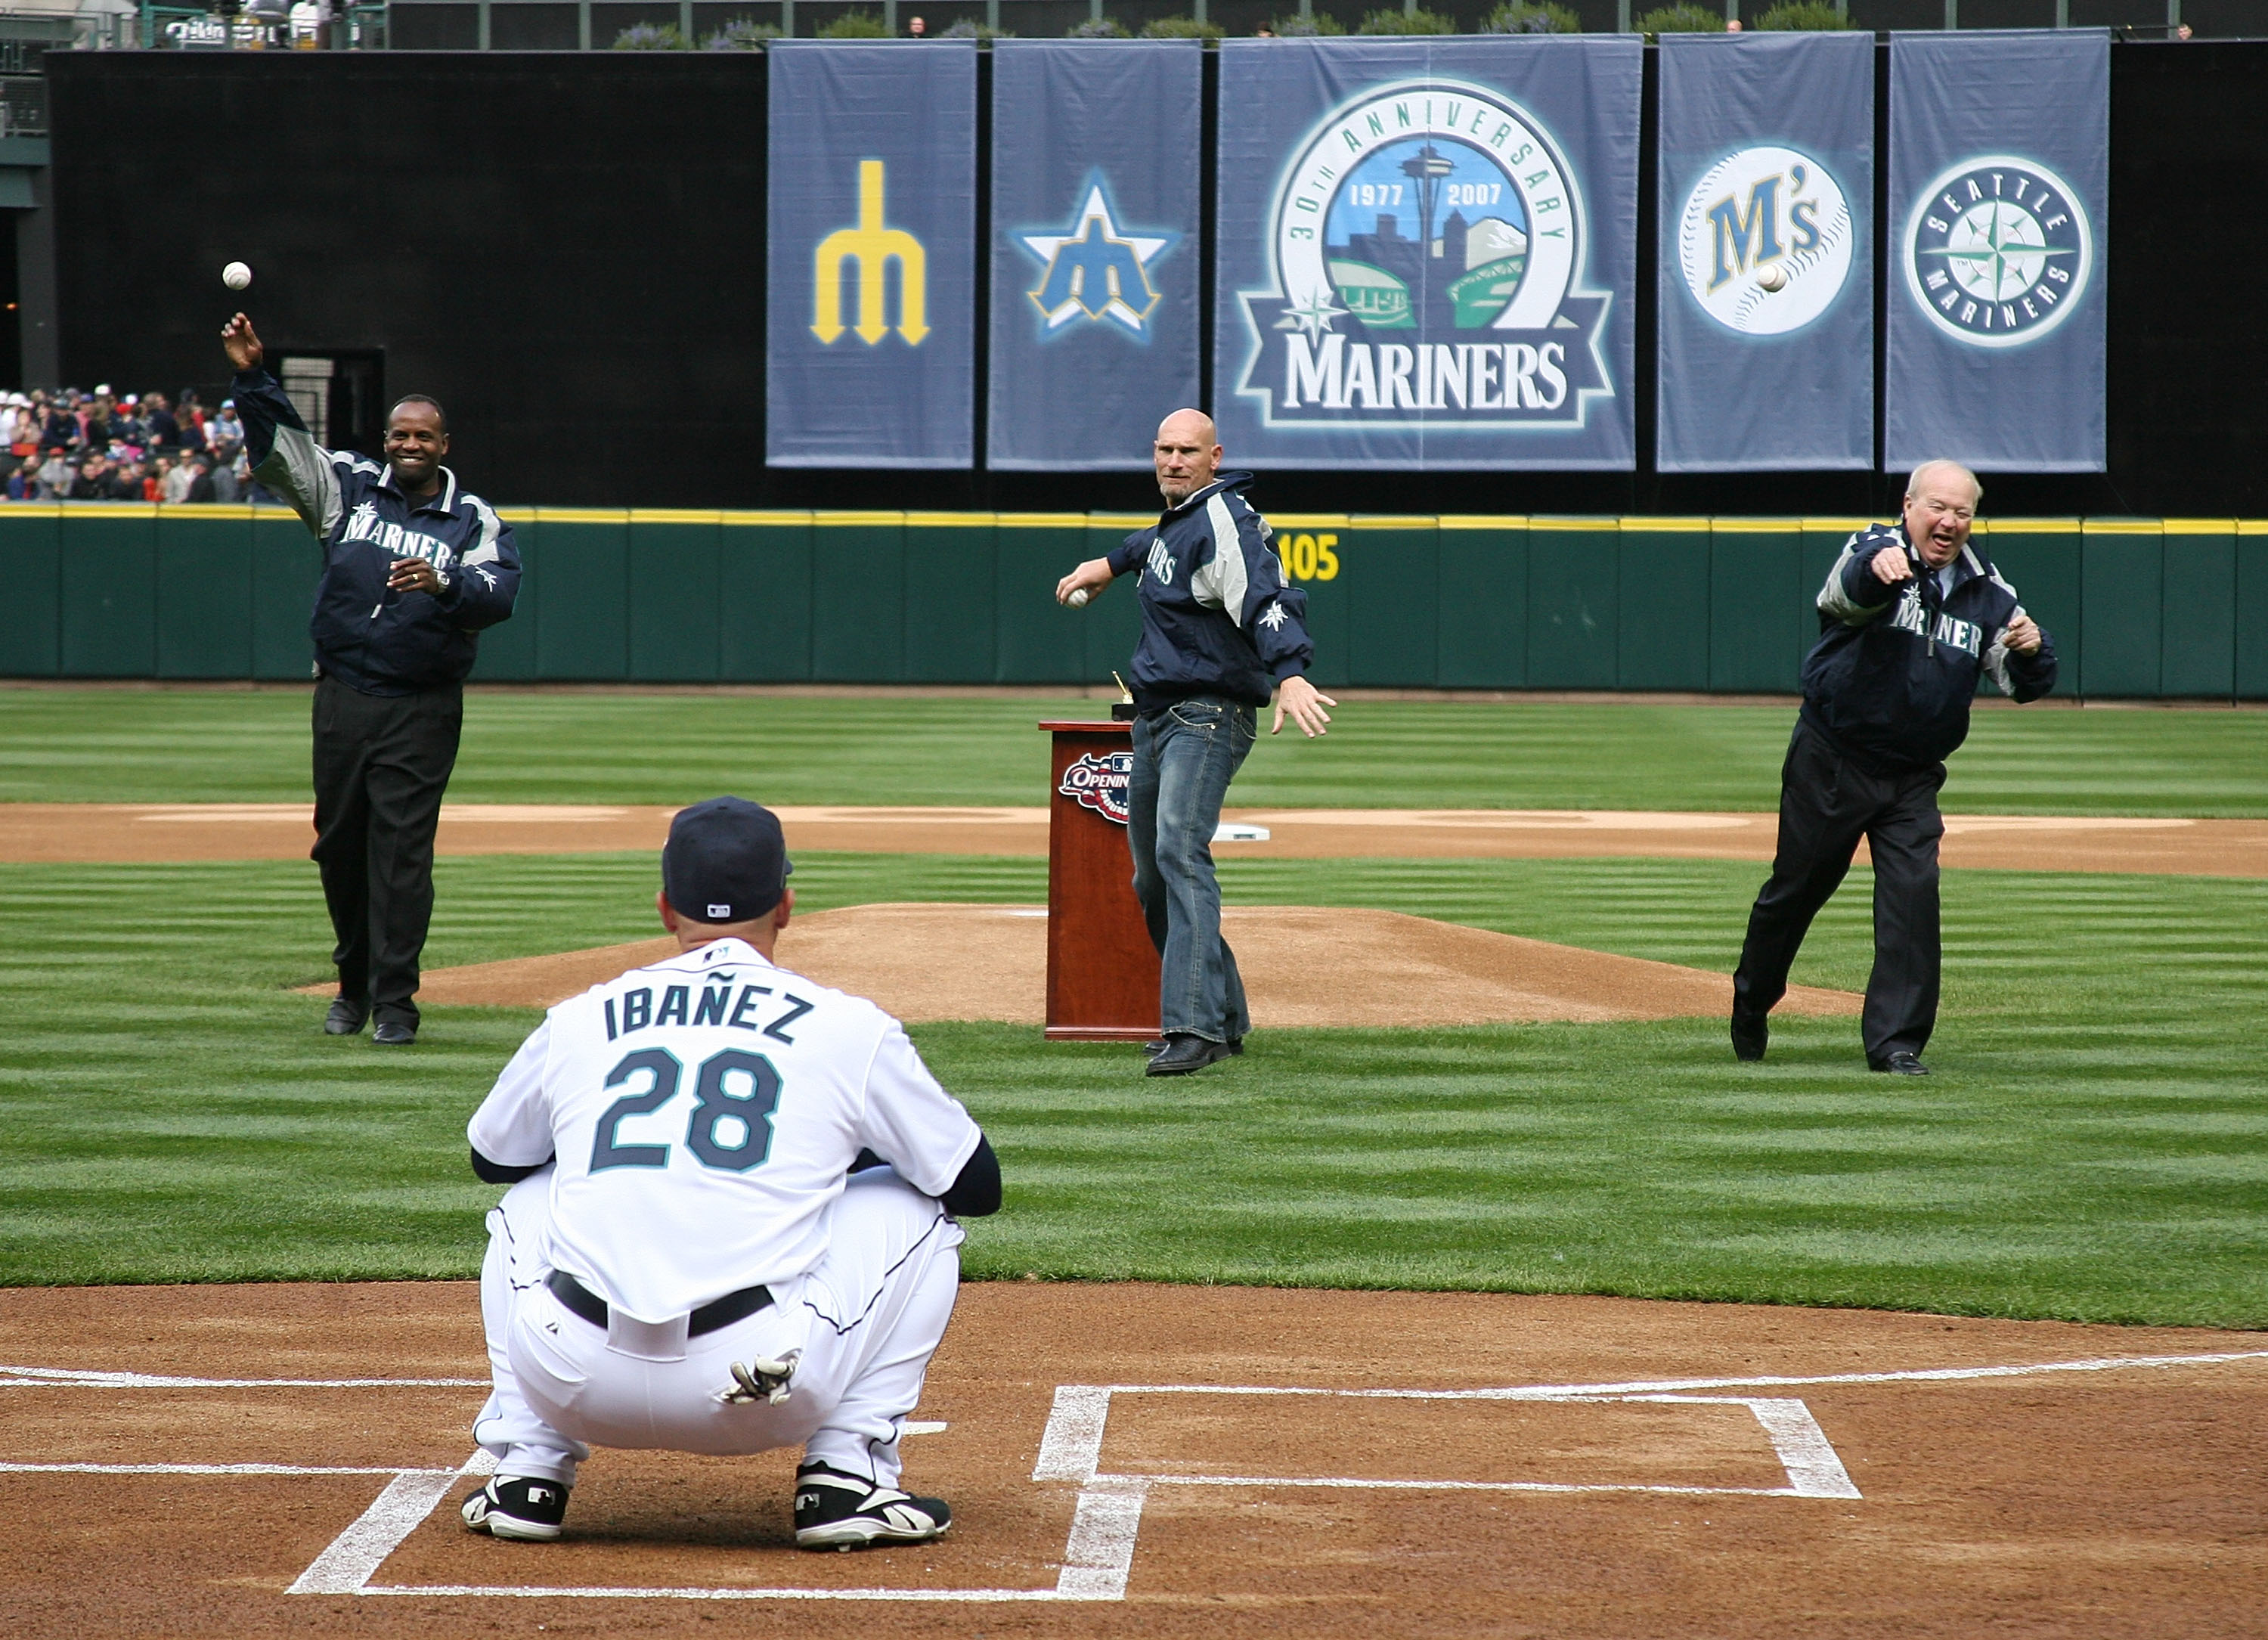 SEATTLE - APRIL 2:  (L-R) Former Mariners Alvin Davis, Jay Buhner, and team announcer Dave Niehaus of the Seattle Mariners throw out the ceremonial first pitch of the game on opening day against the Oakland A's at Safeco Field April 2, 2007 in Seattle, Wa